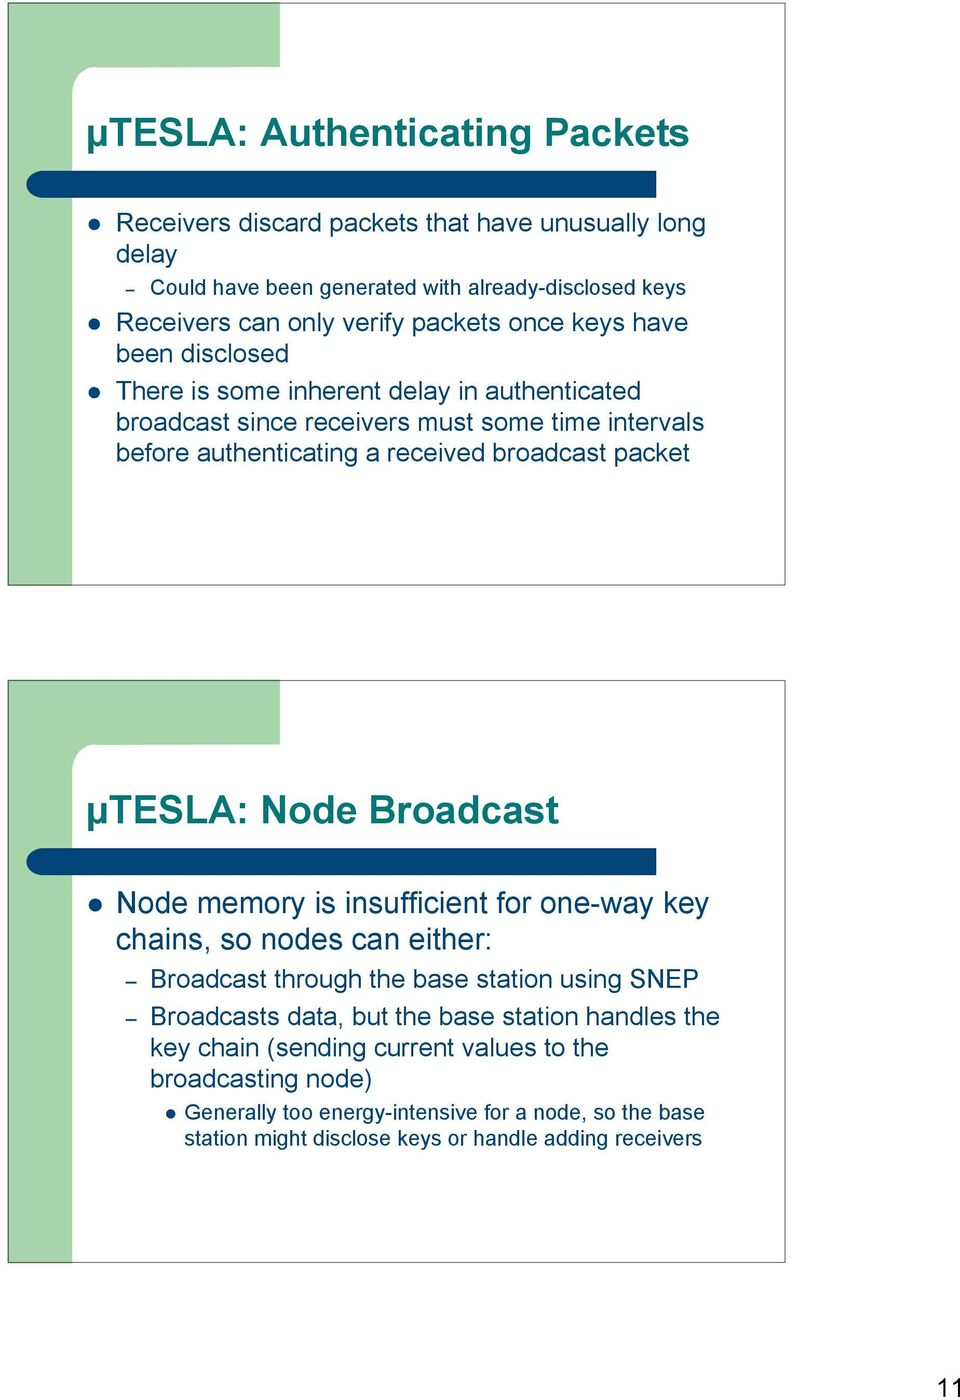 µtesla: Node Broadcast Node memory is insufficient for one-way key chains, so nodes can either: Broadcast through the base station using SNEP Broadcasts data, but the base station